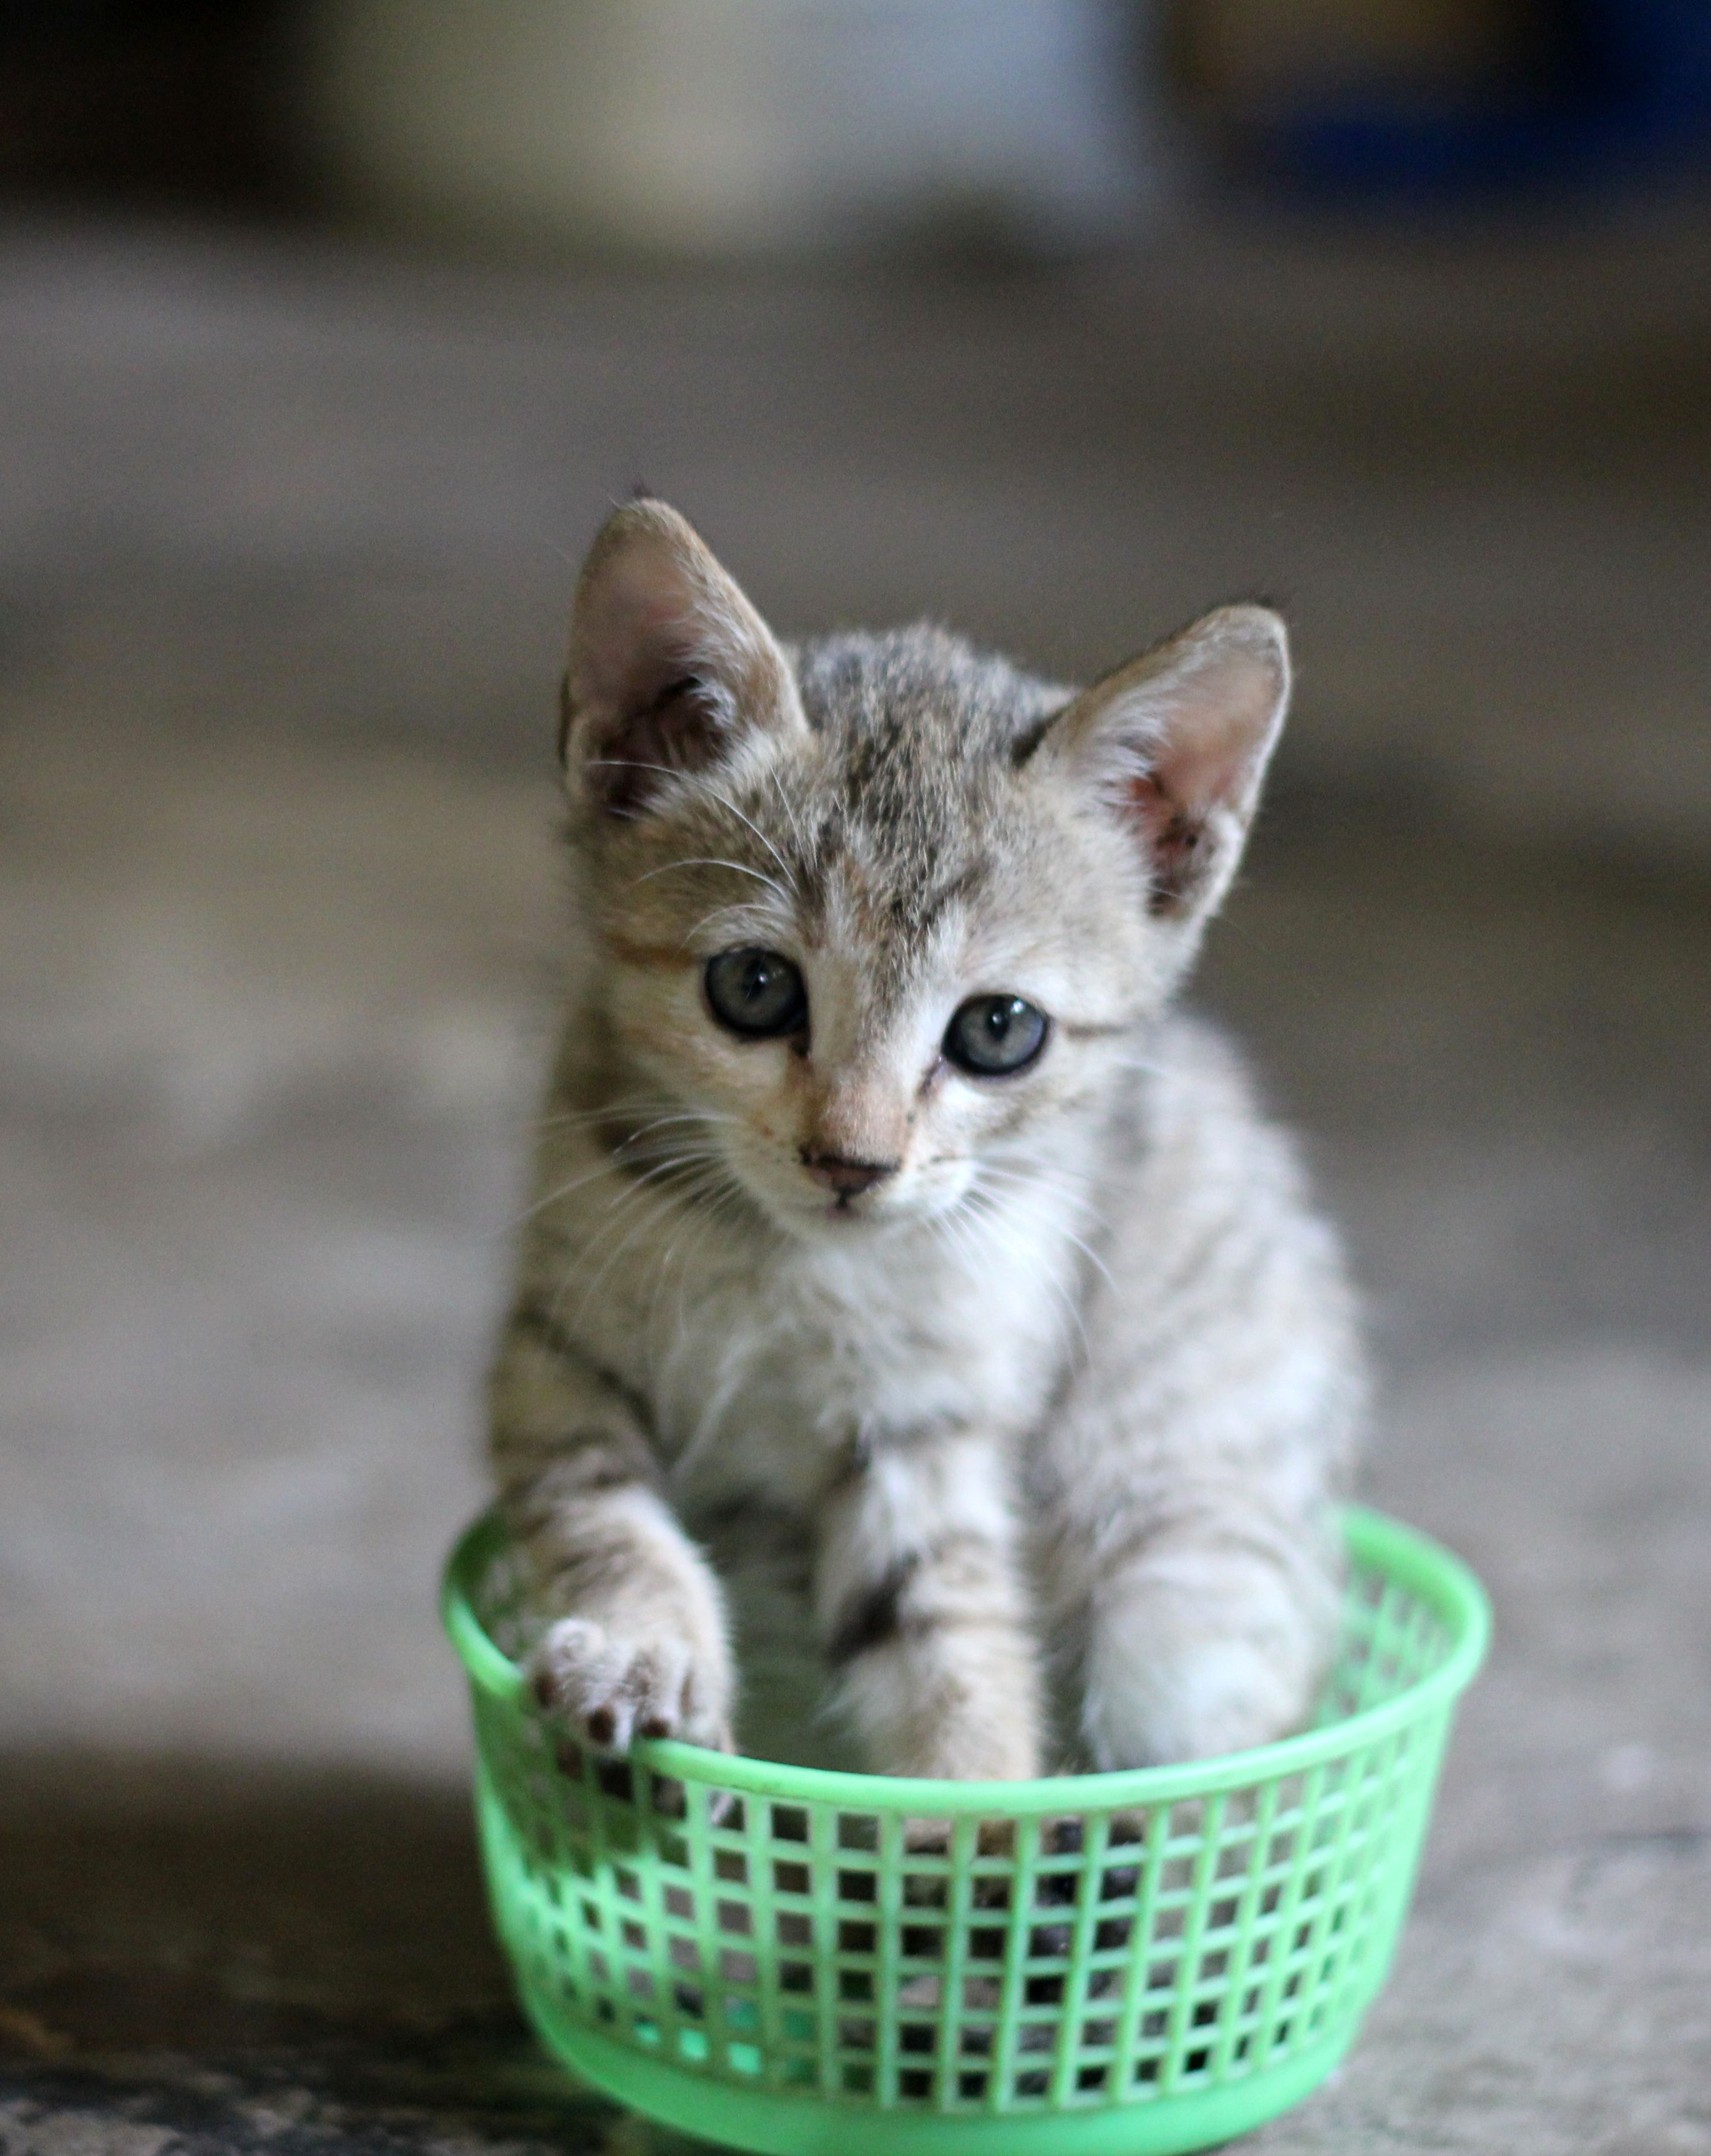 In the Green Basket. Polydactyl cat, Kittens cutest